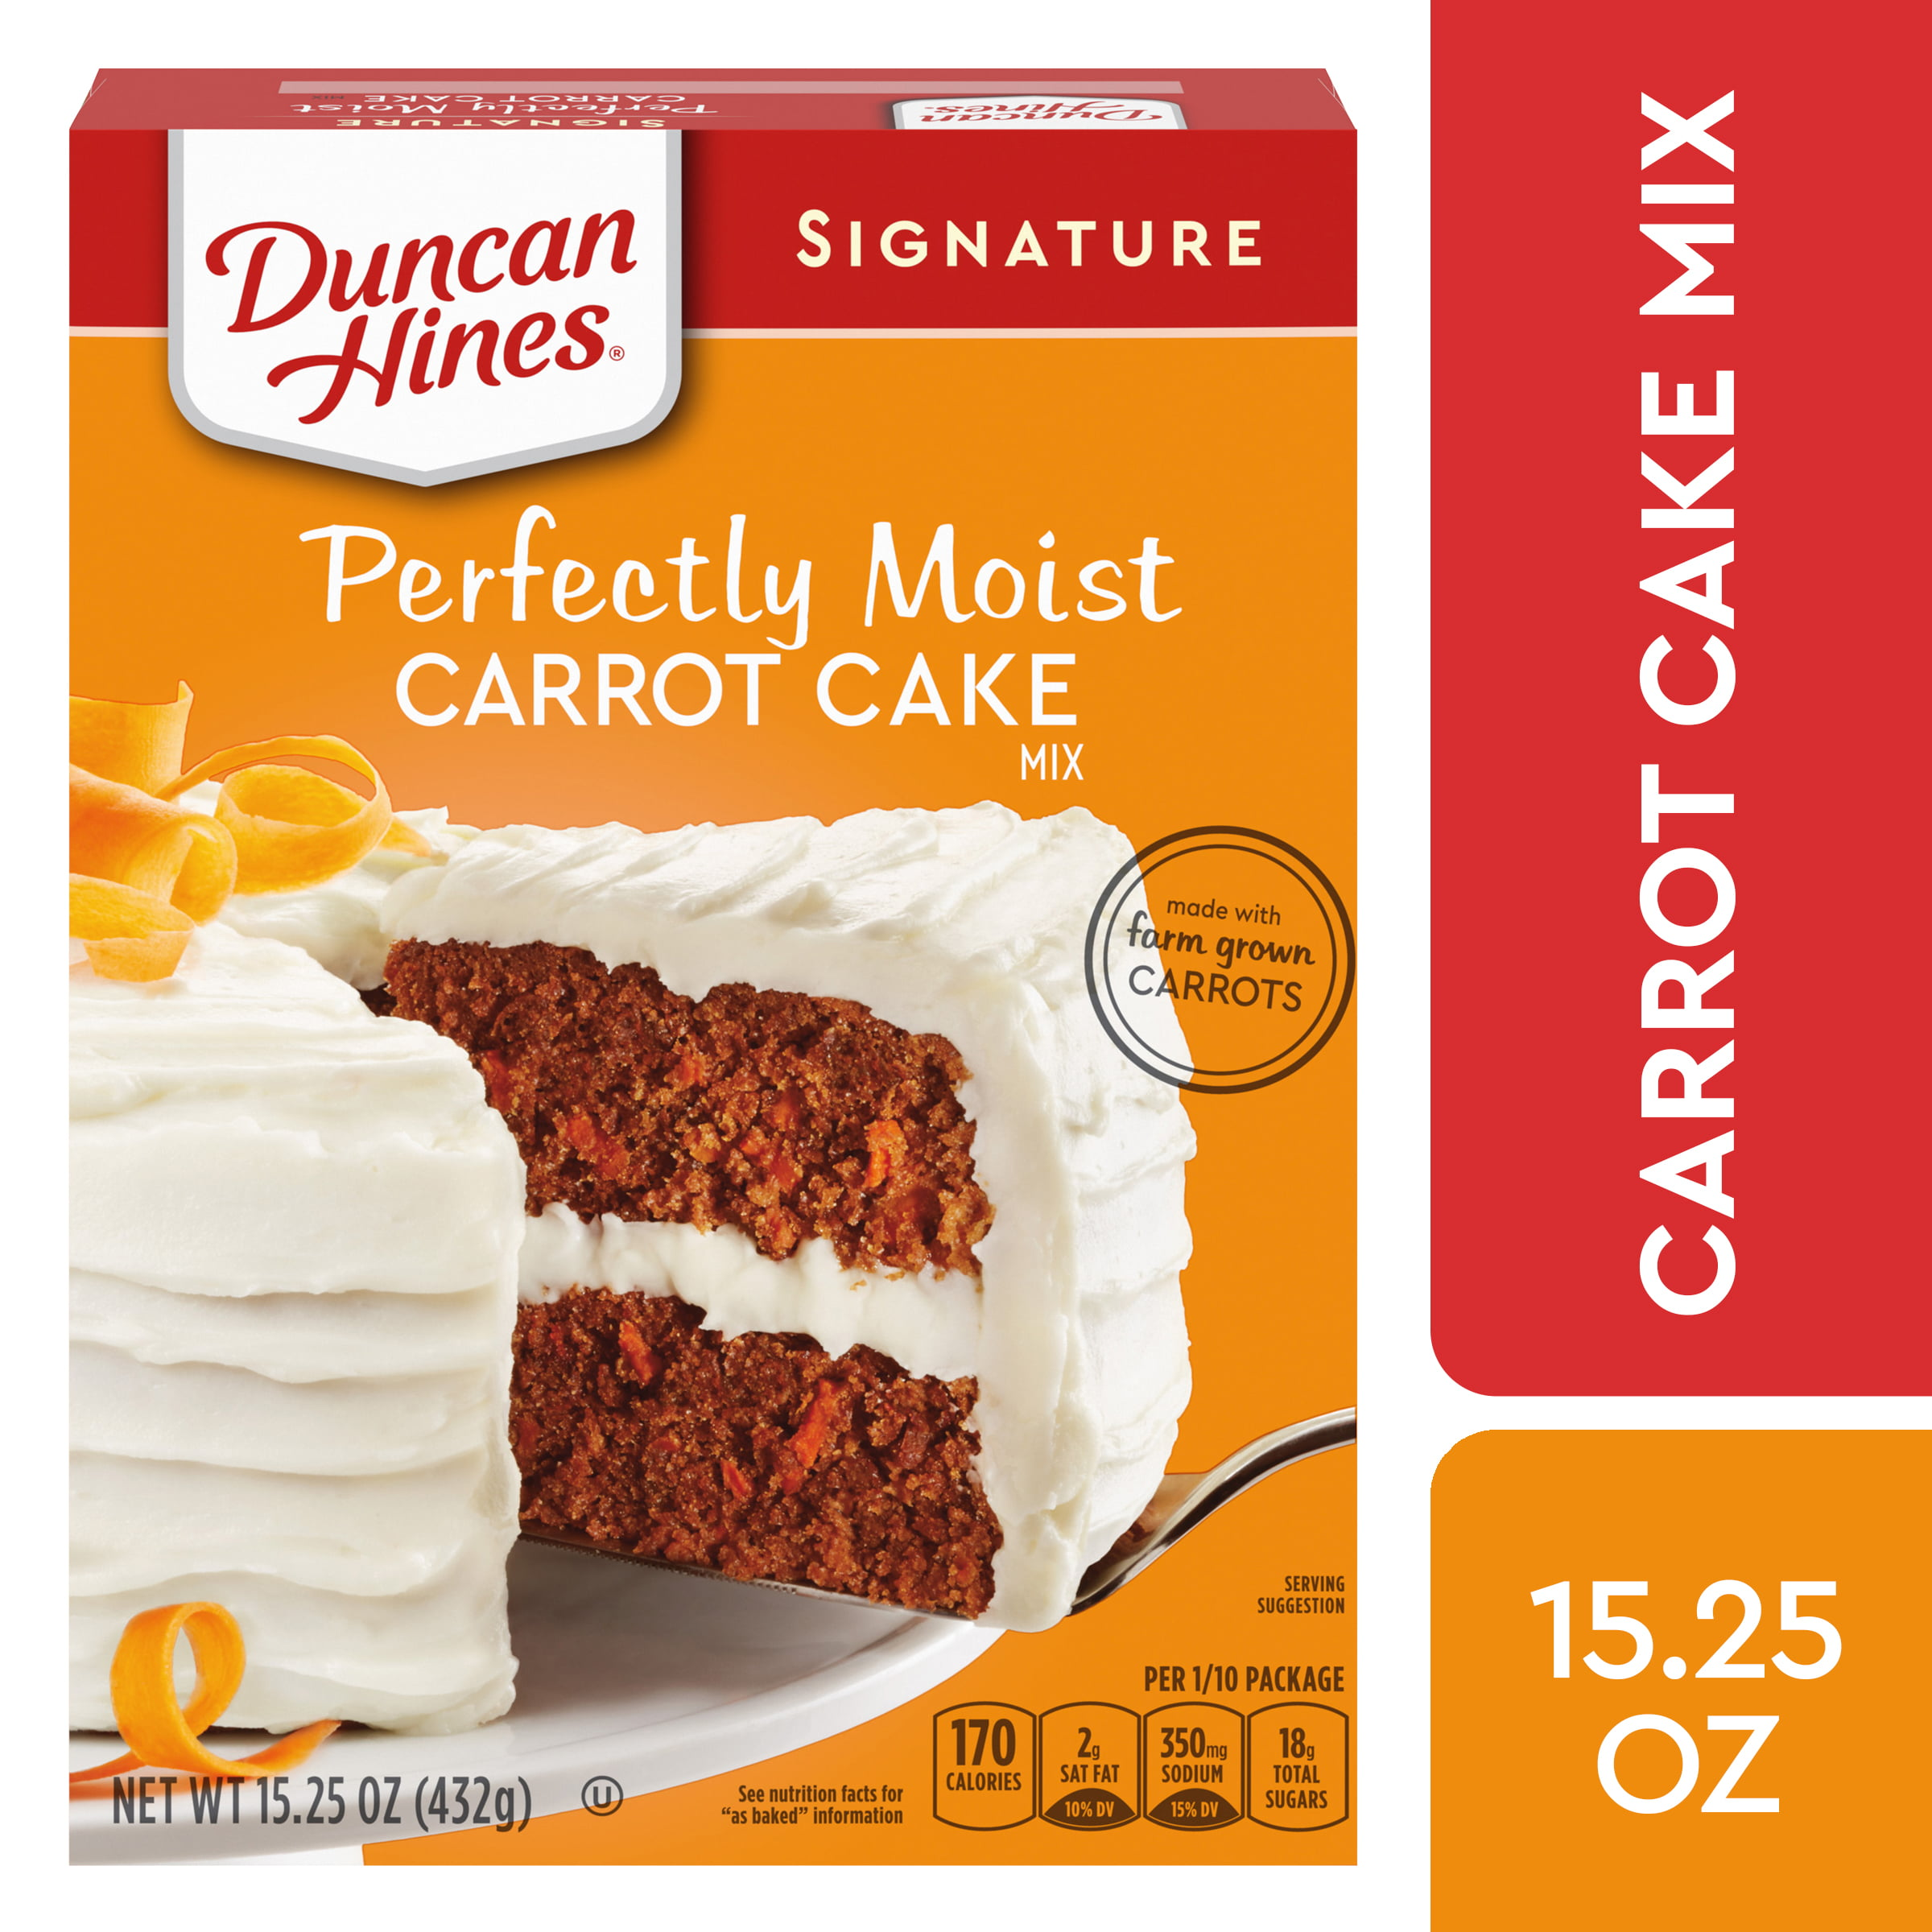 Duncan Hines Signature Perfectly Moist Carrot Cake Mix, 15.25 OZ